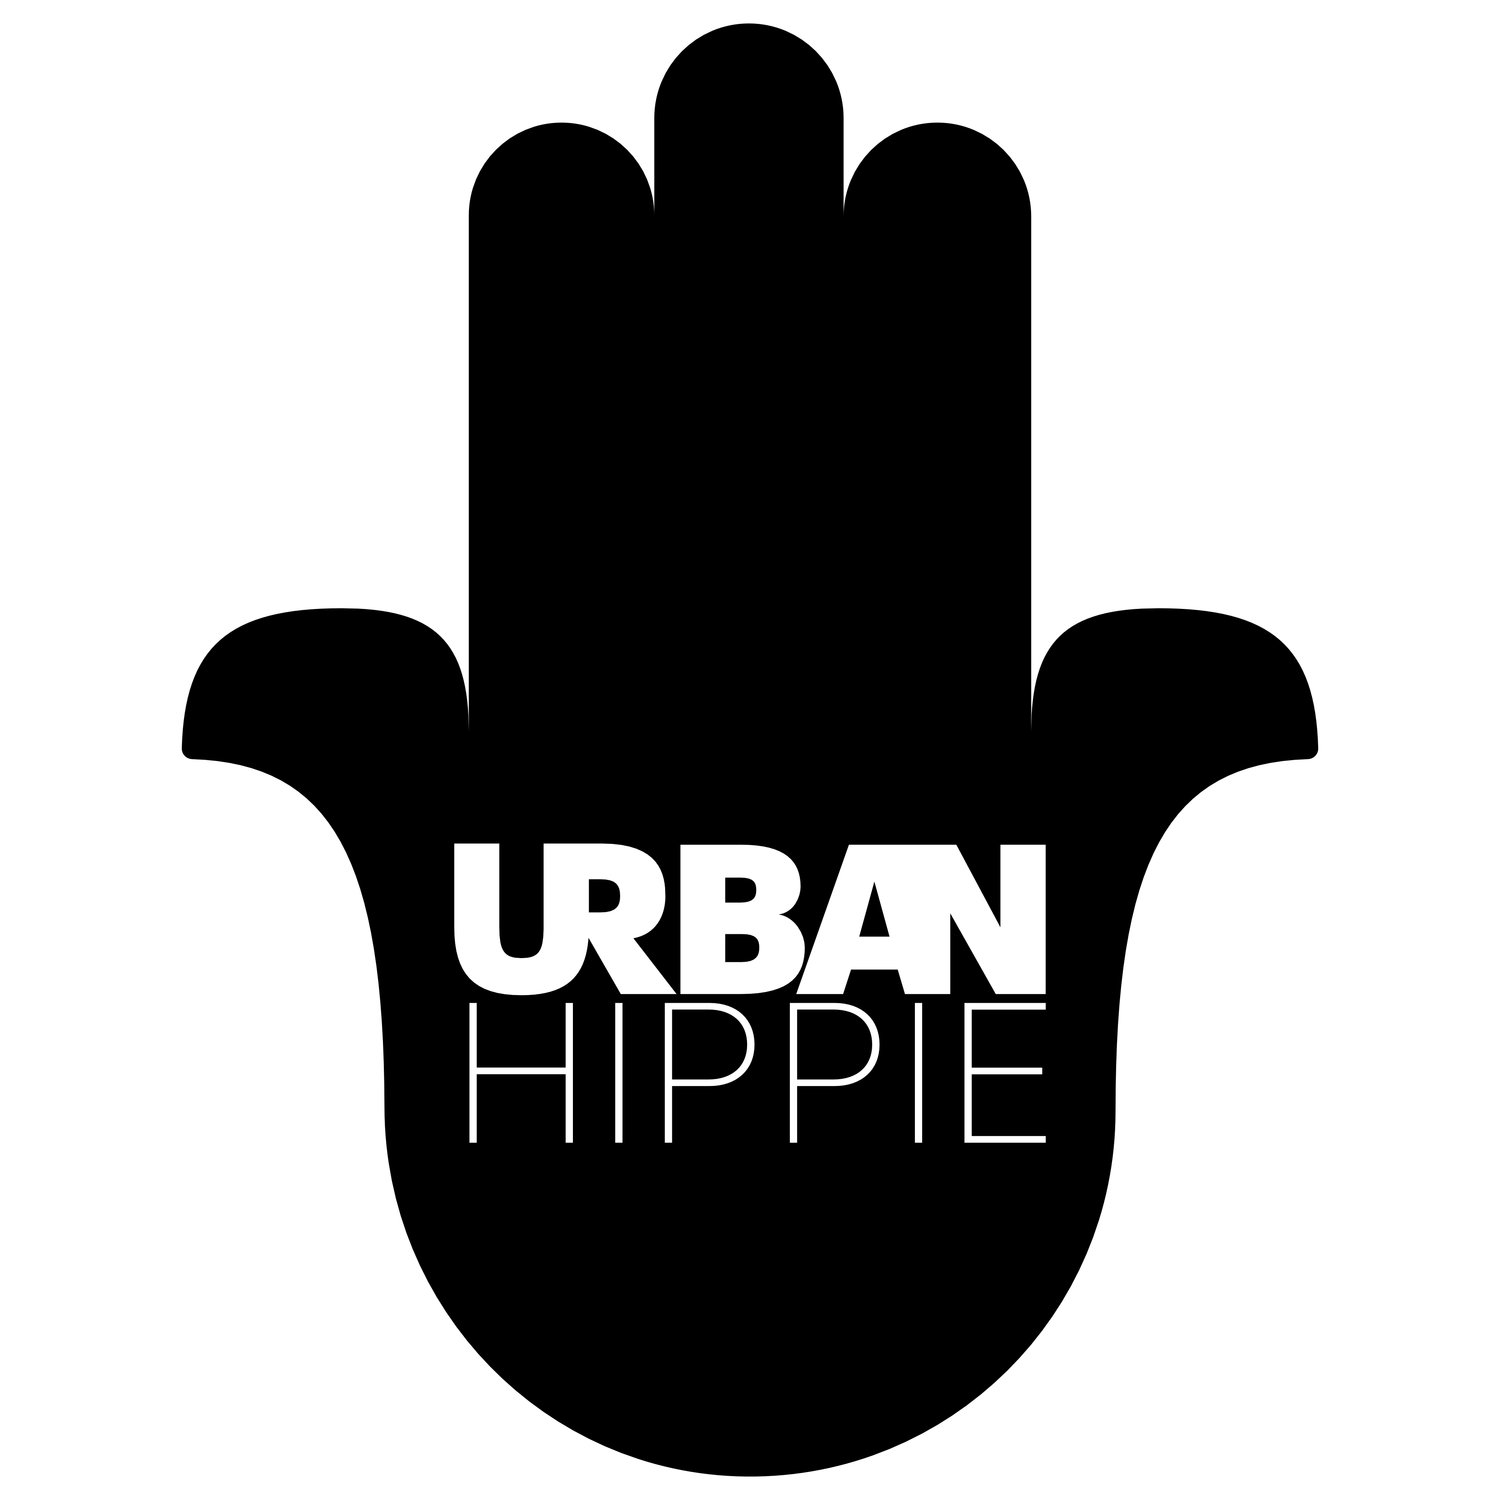 Urban hippie creative